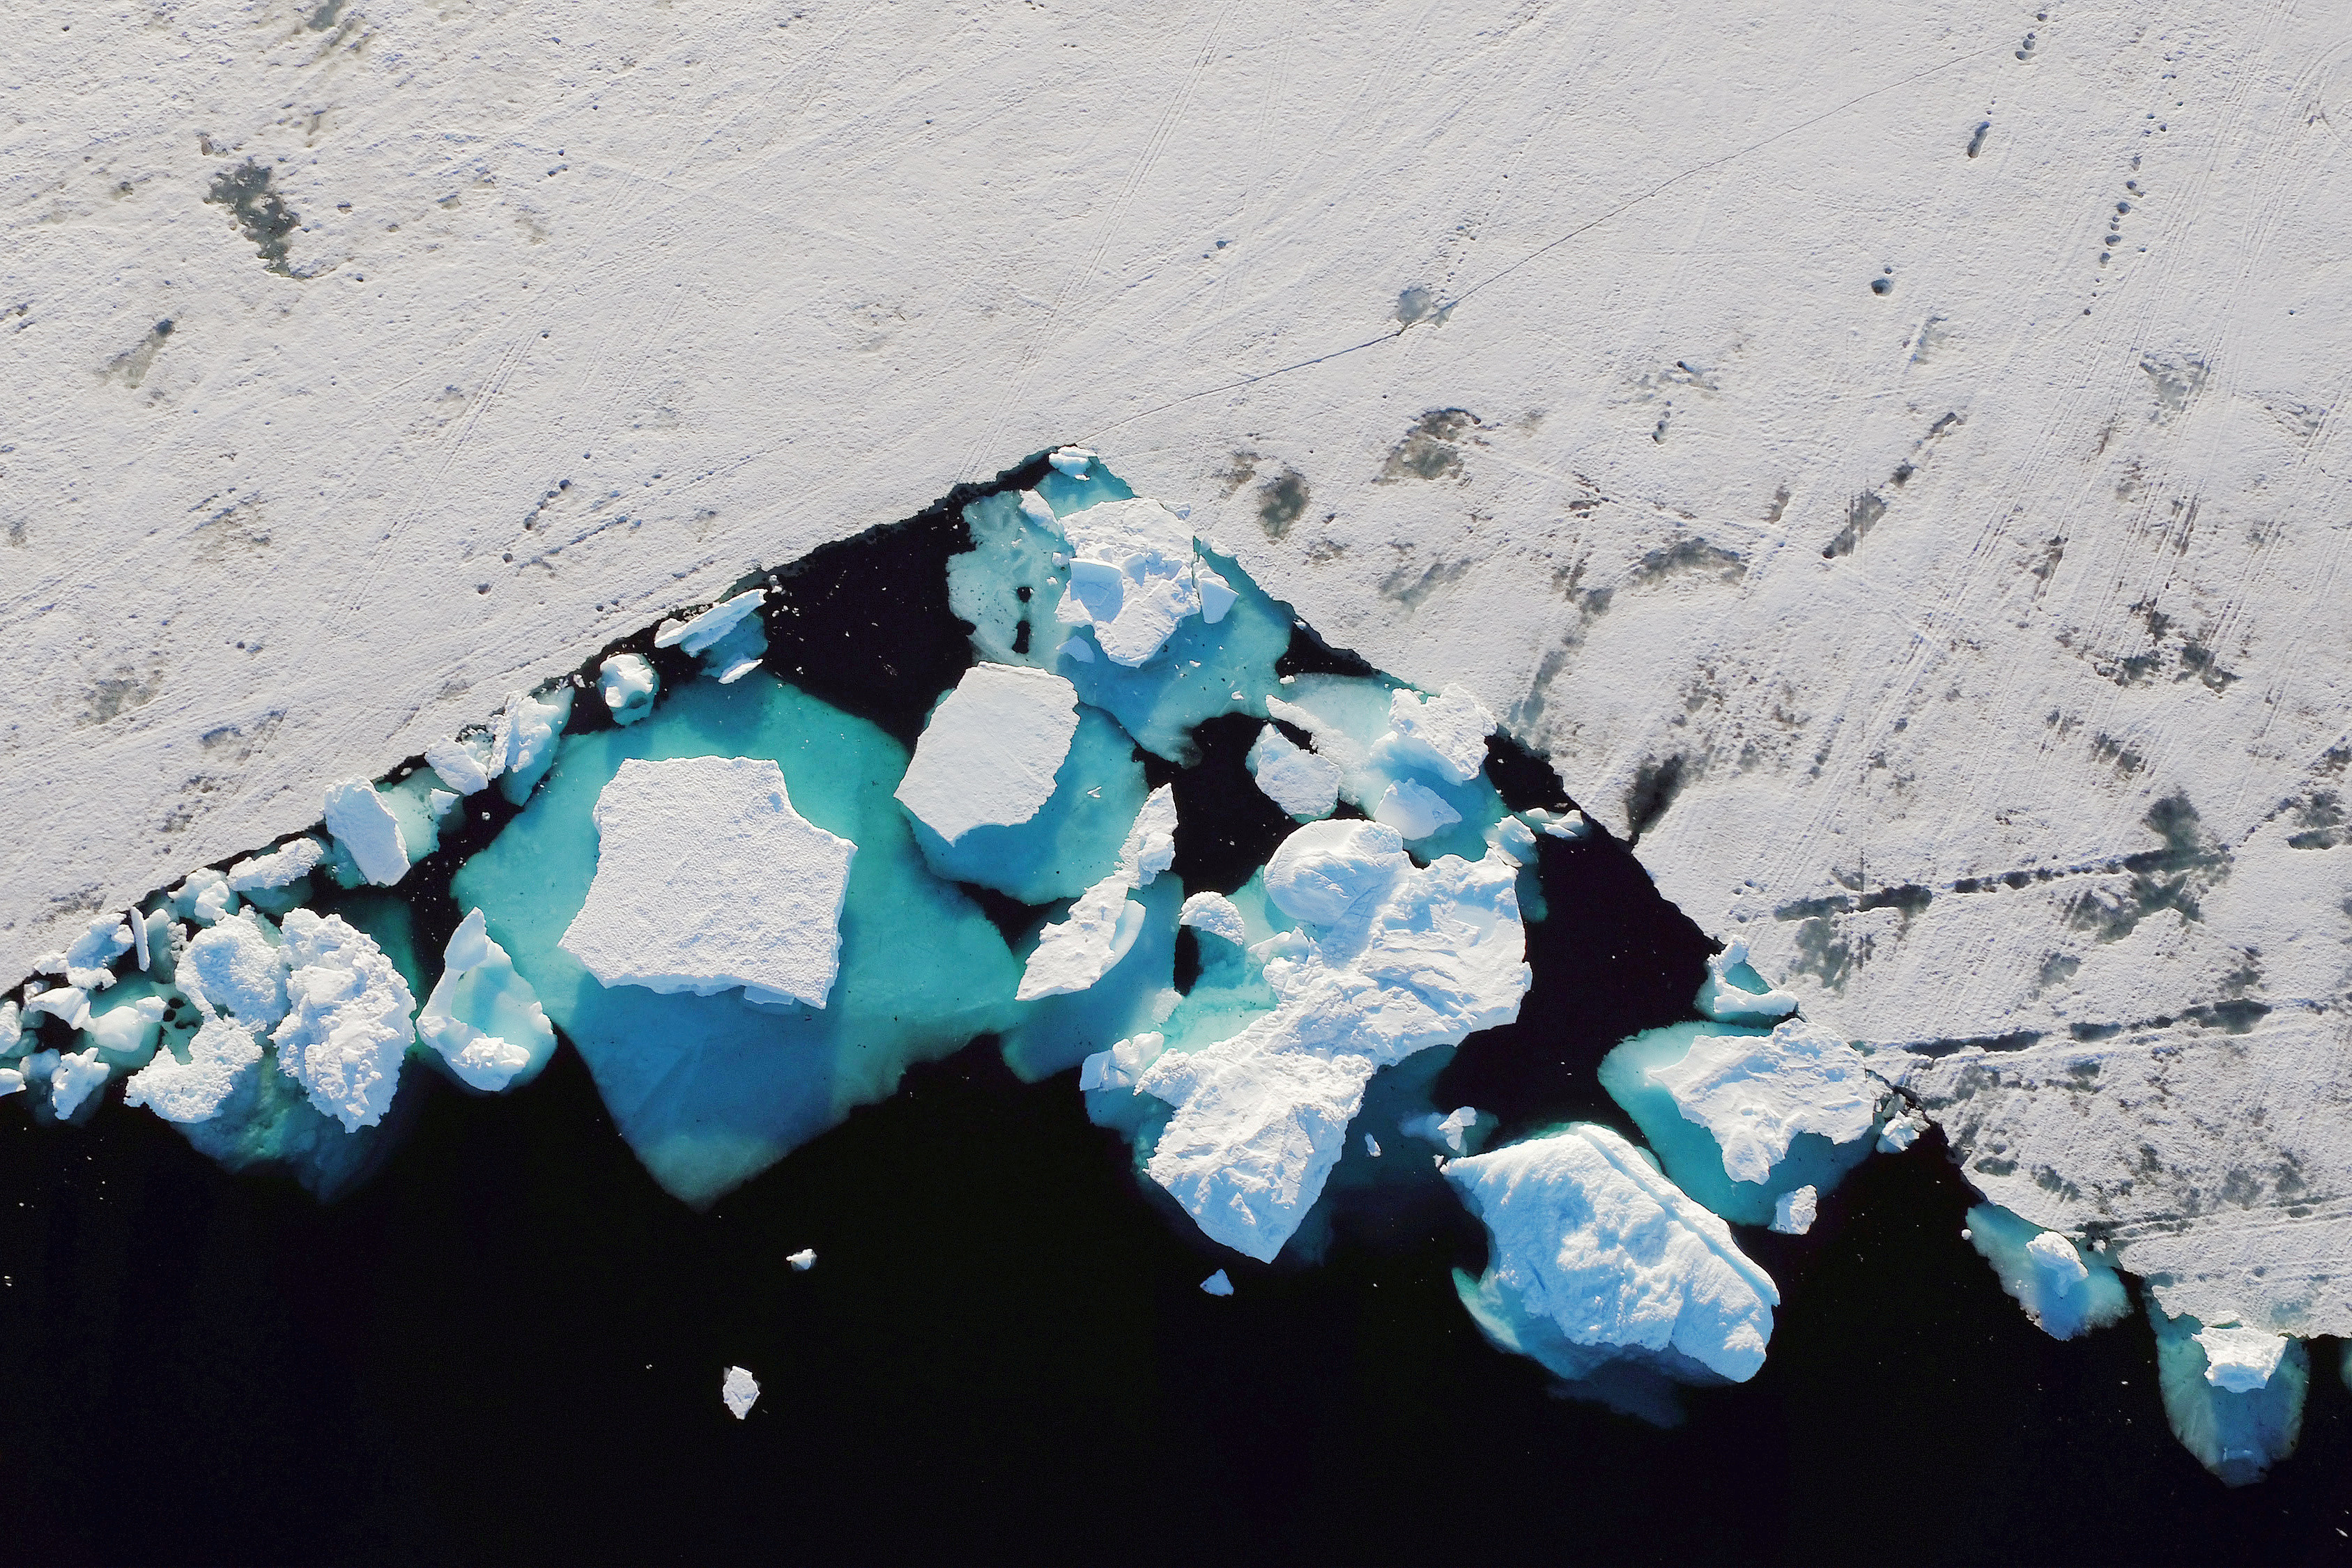 An iceberg floats in a fjord near the town of Tasiilaq, Greenland, June 18, 2018.